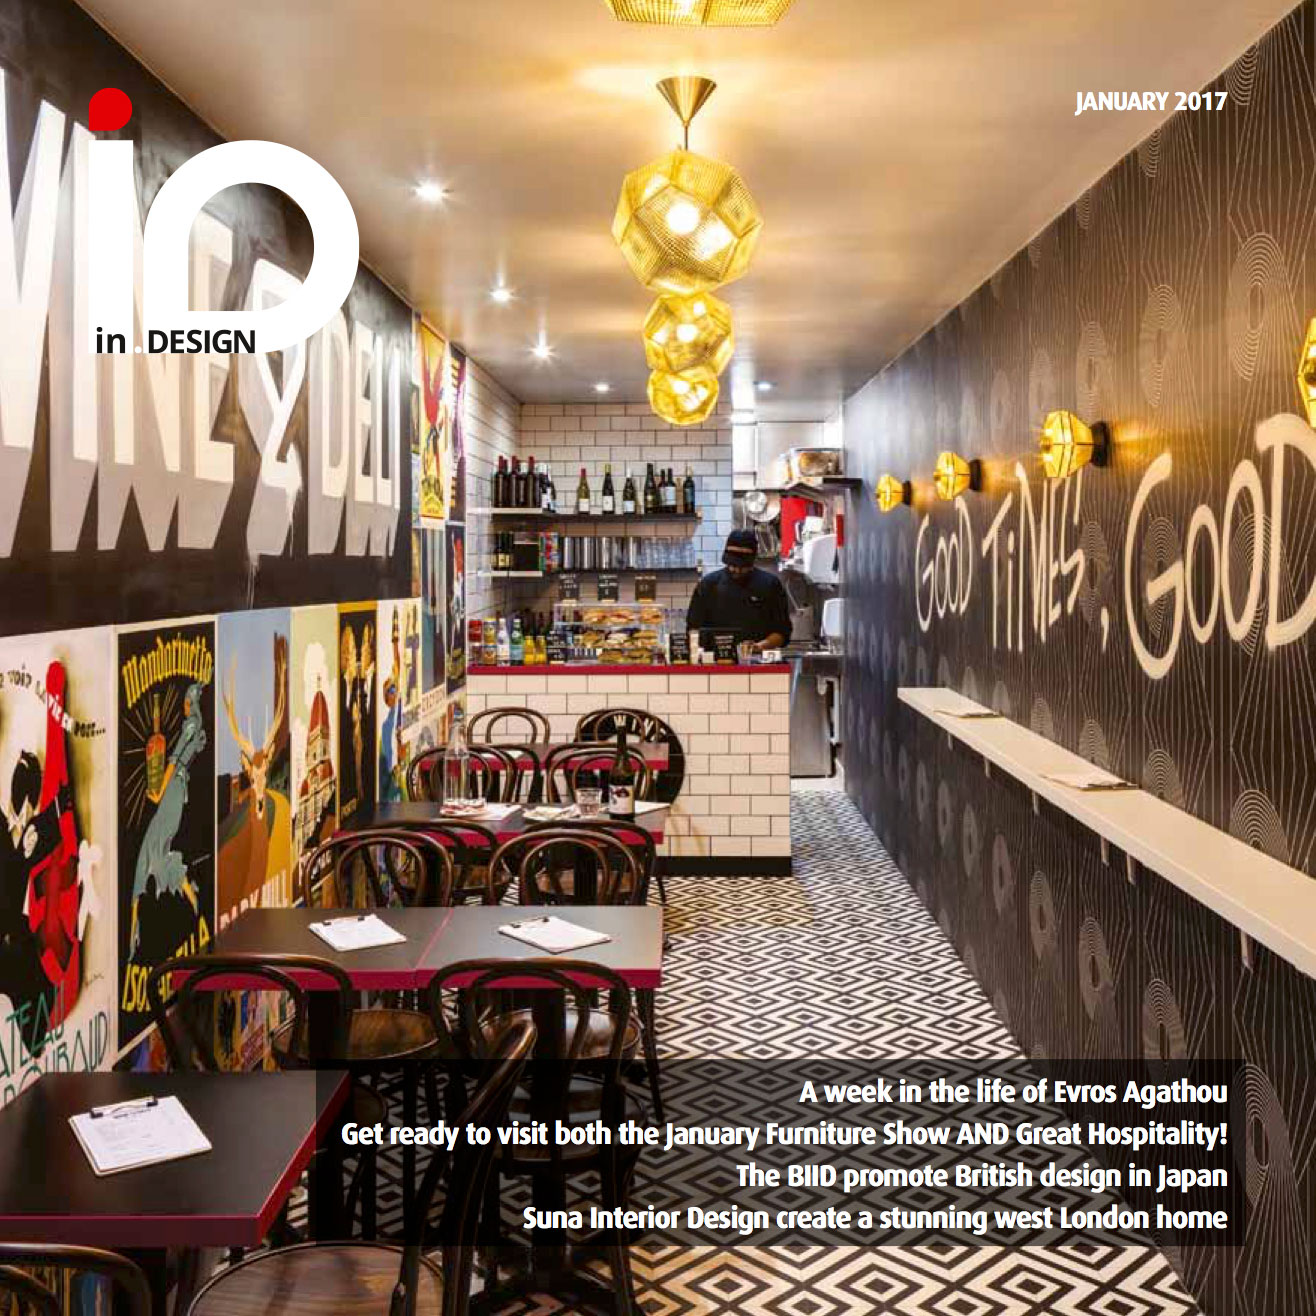 IN DESIGN - COVER SHOT - JANUARY 2017 1